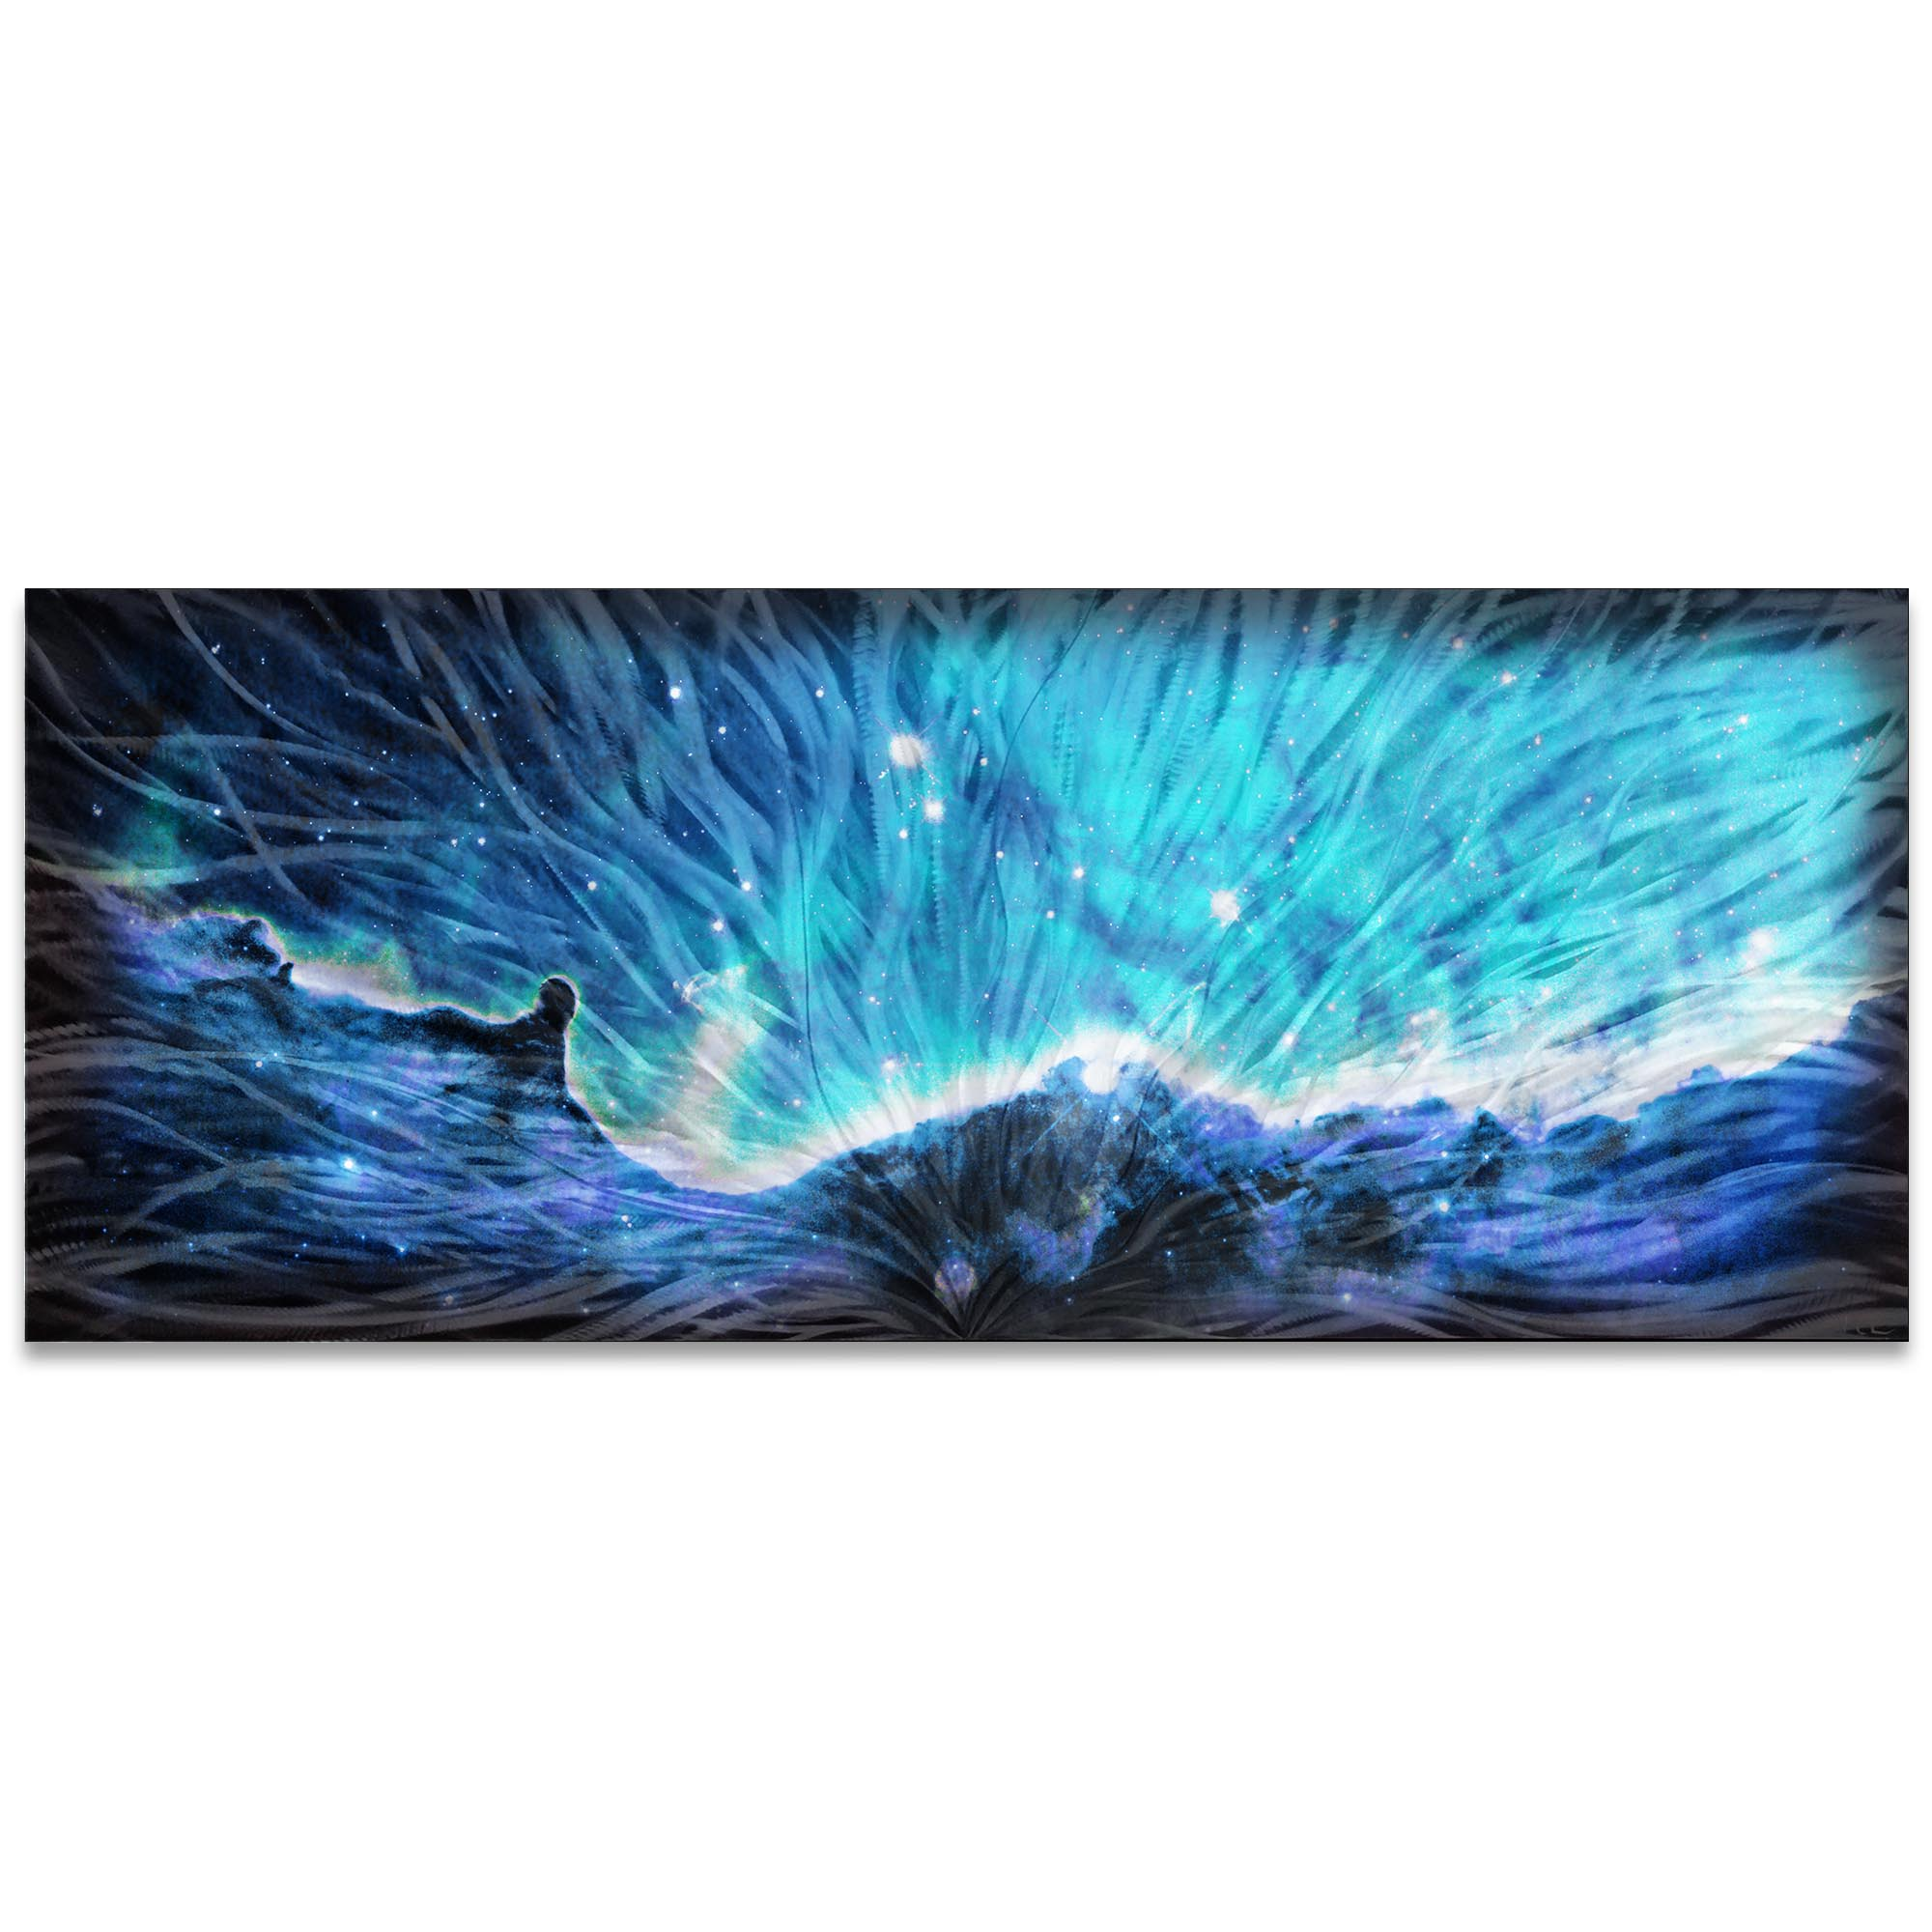 Helena Martin 'Celestial Landscape Blue' 60in x 24in Original Abstract Art on Ground and Colored Metal